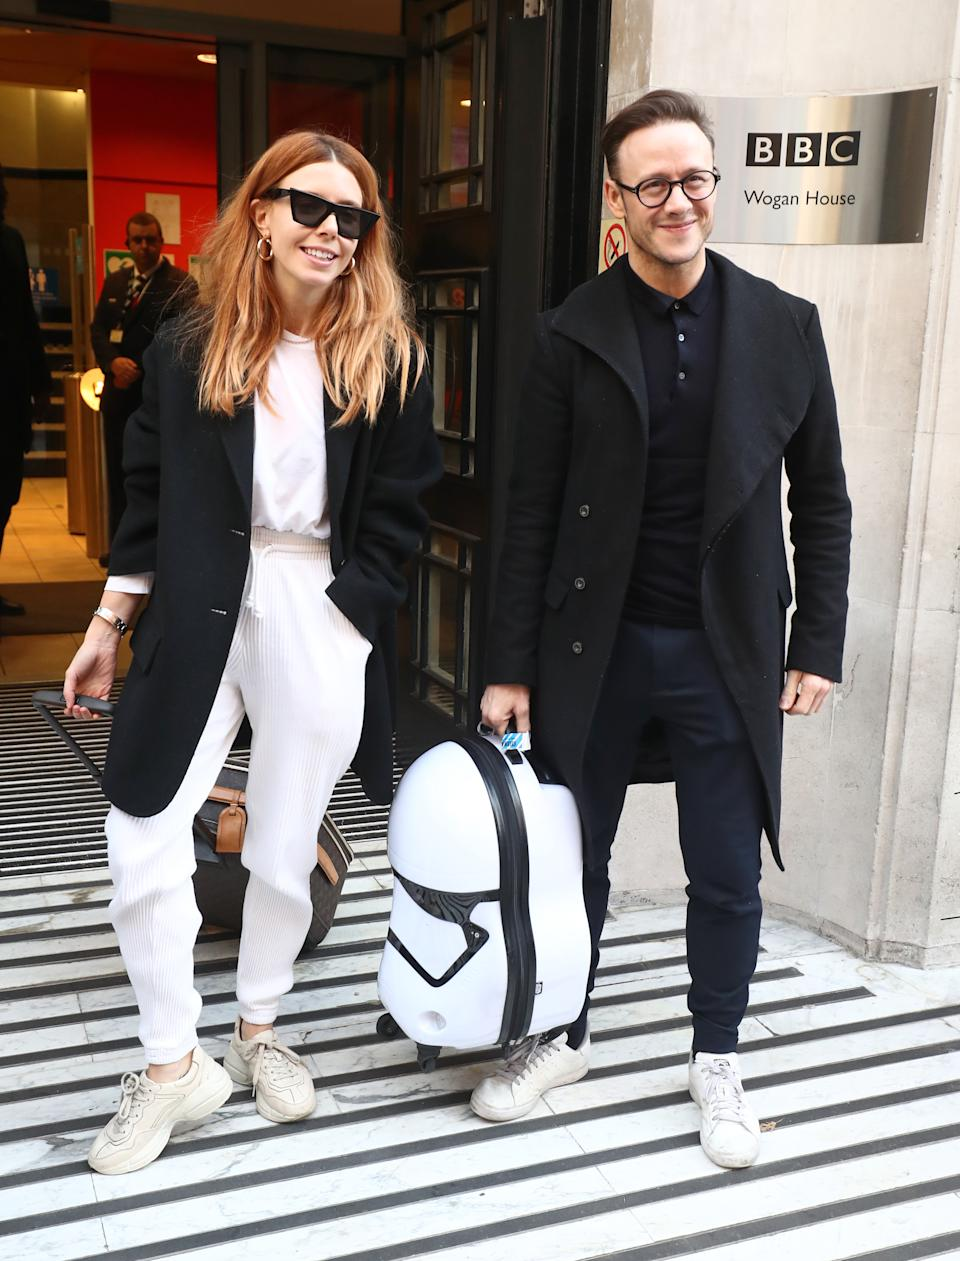 Strictly Come Dancing finalists Stacey Dooley and Kevin Clifton leave BBC Broadcasting House in London after appearing on the Chris Evans radio show.